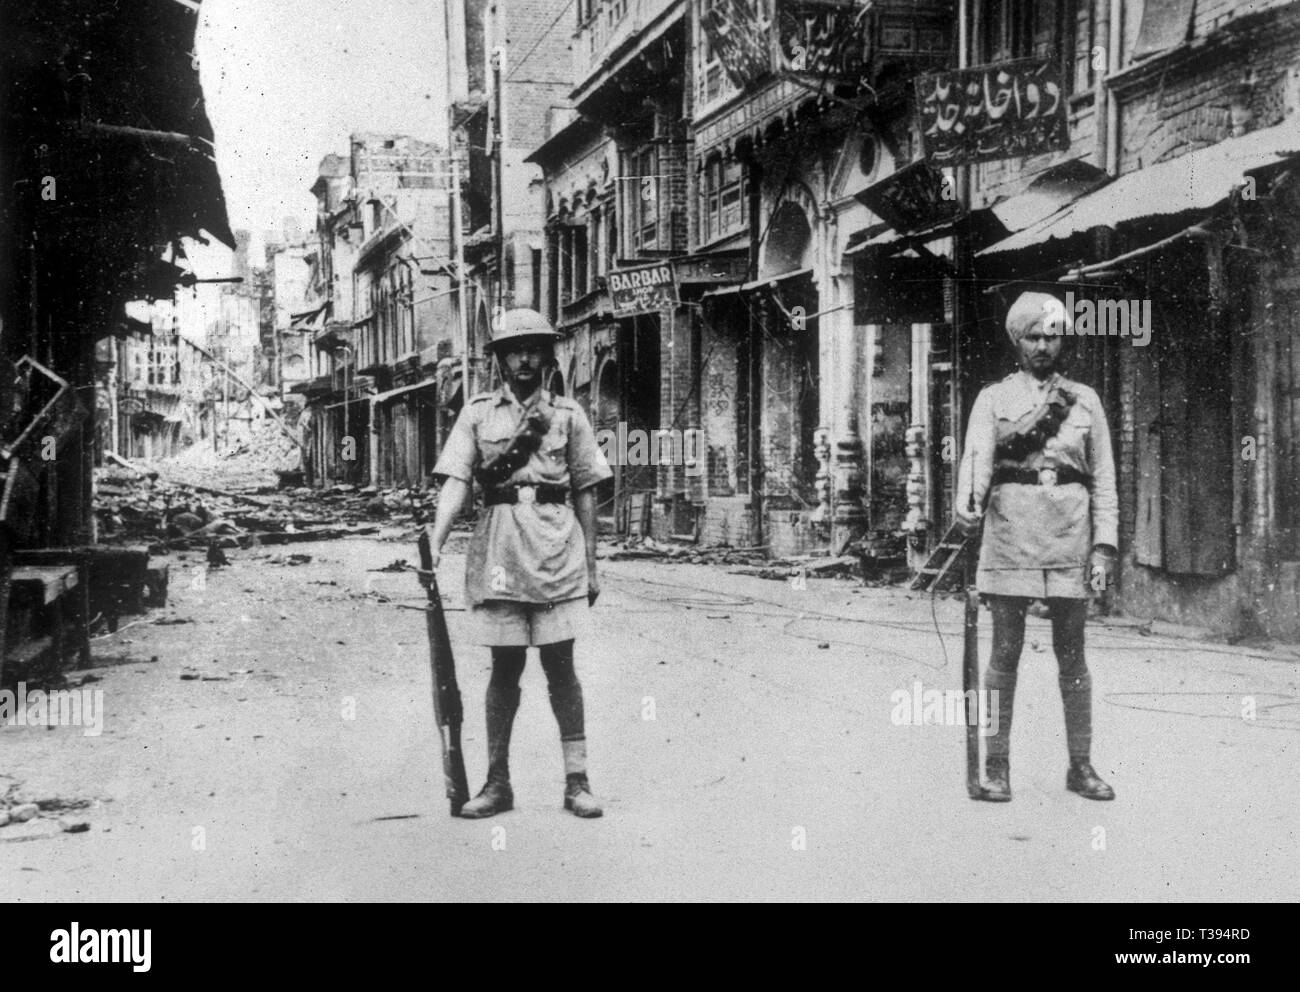 Amritsar Massacre. The Streets of Amritsar during the riots that broke out after the Massacre. 1919, The Jallianwala Bagh massacre - Stock Image